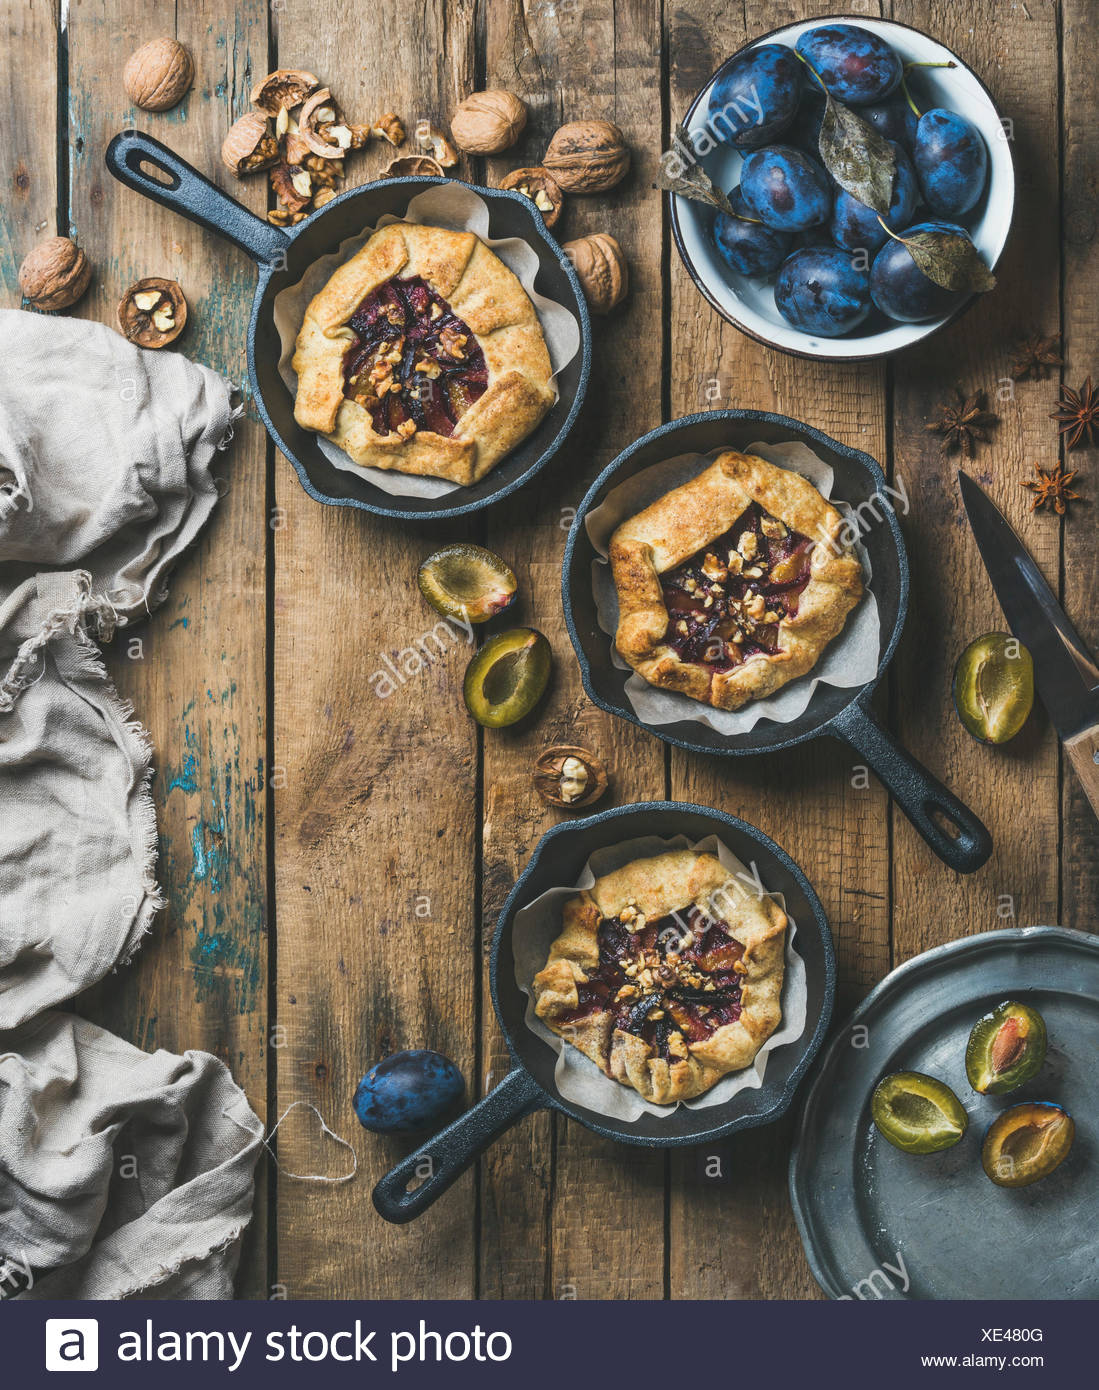 Plum and walnut crostata pie with ice-cream scoops in individual cast iron pans over rustic wooden table, top view, copy space, vertical composition. - Stock Image